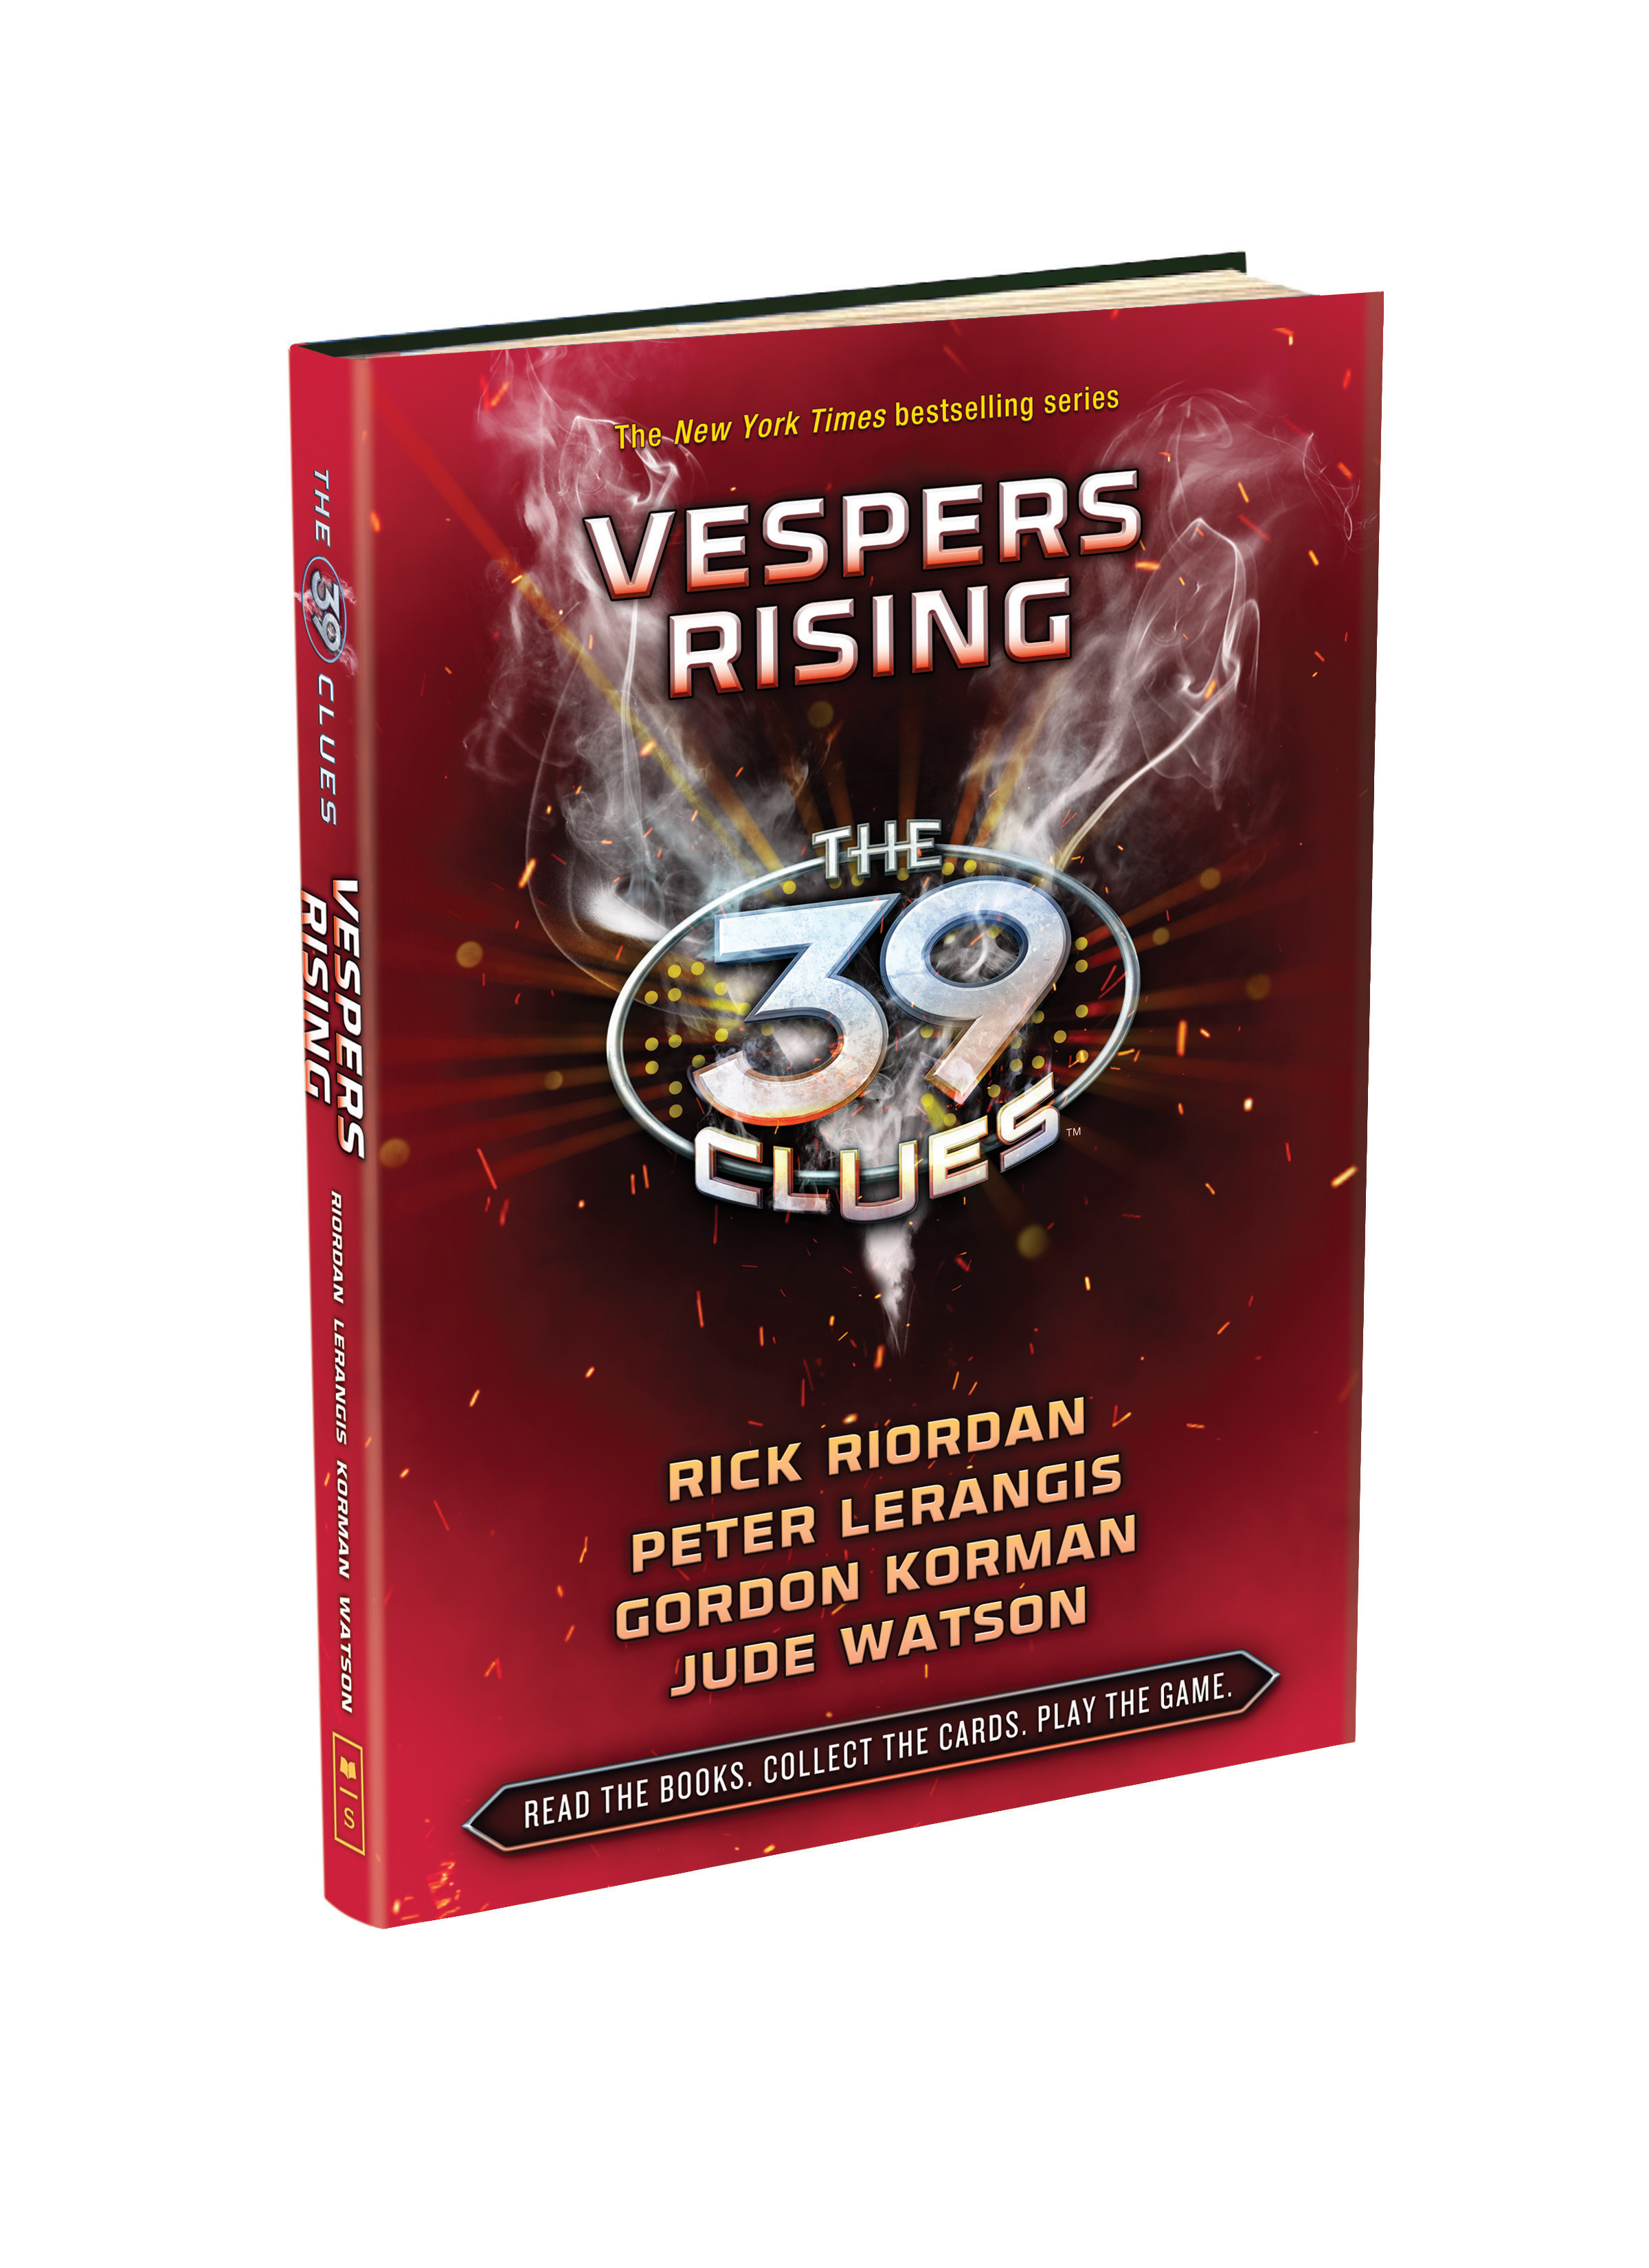 39-clues-vespers-rising